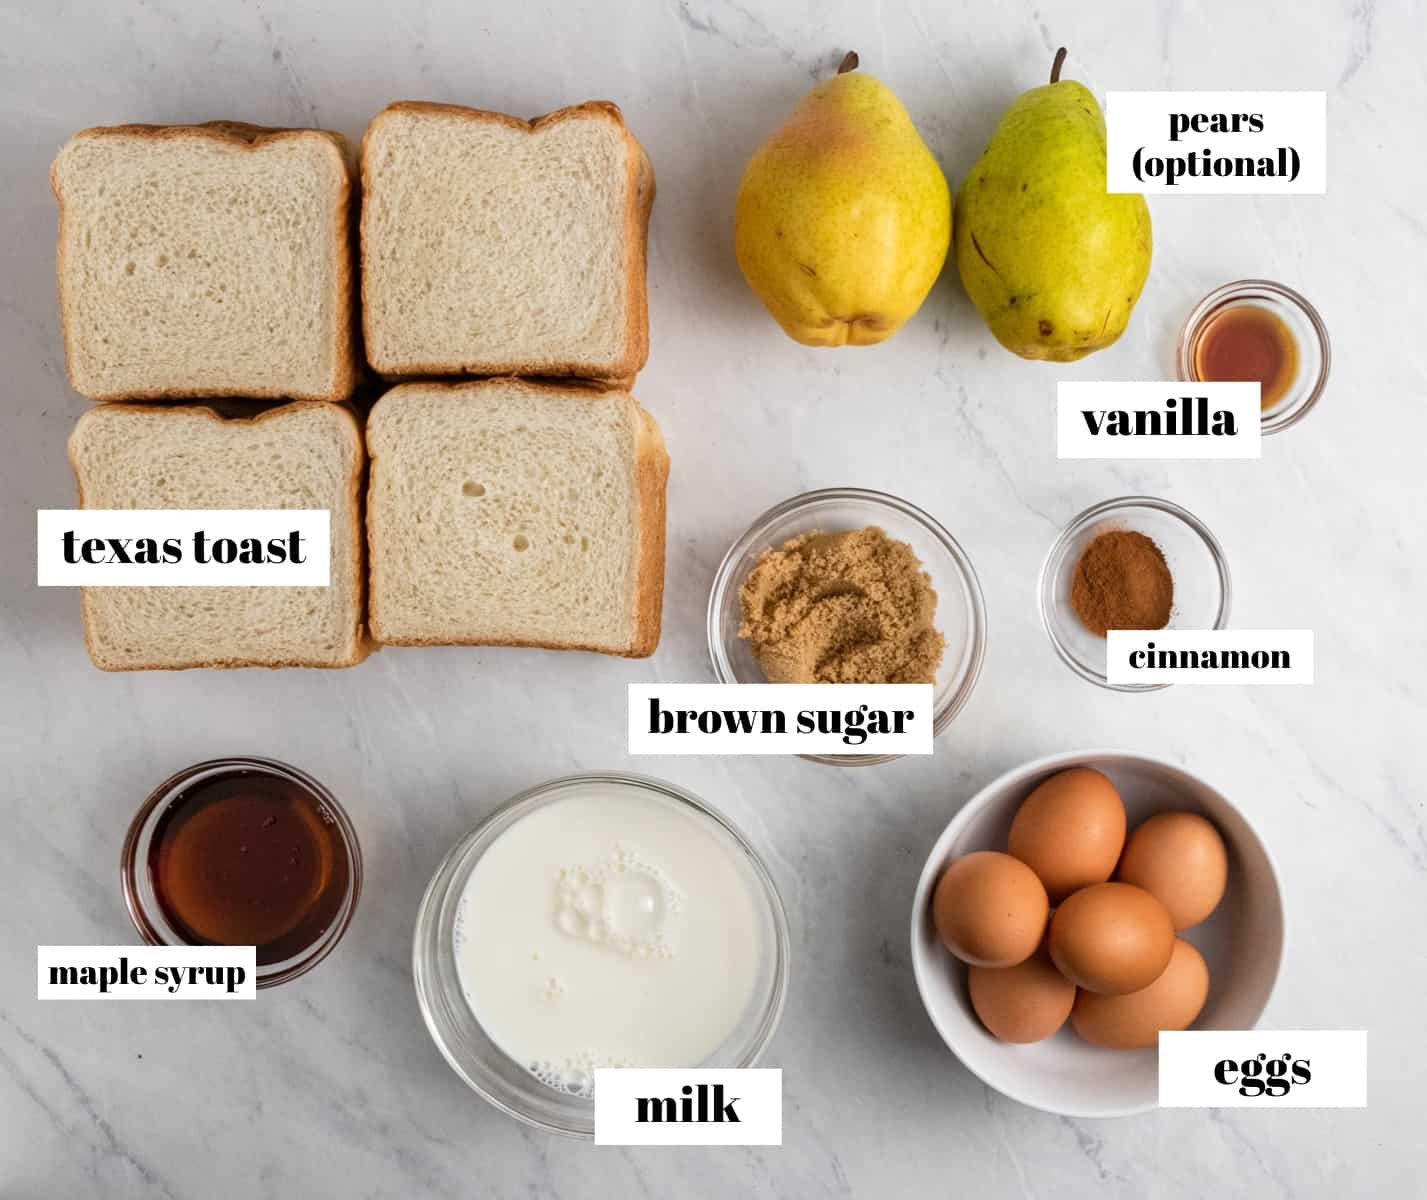 Bread, eggs, milk, syrup and other ingredients labeled on a counter.